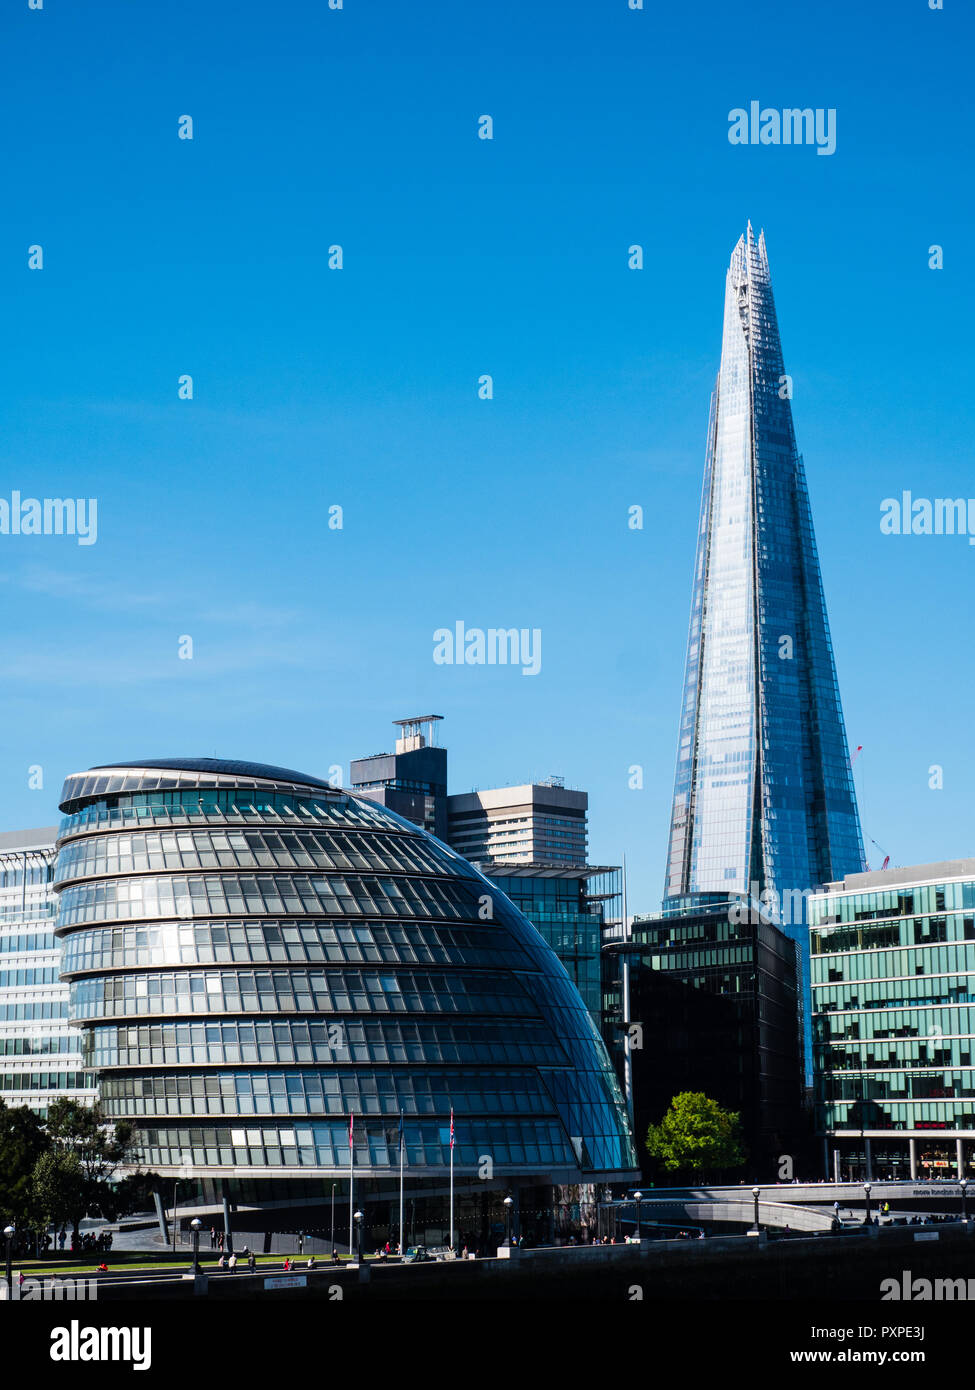 London Assembly, London City Hall, with The Shard, on the River Thames, South Bank, London, England, UK, GB. - Stock Image